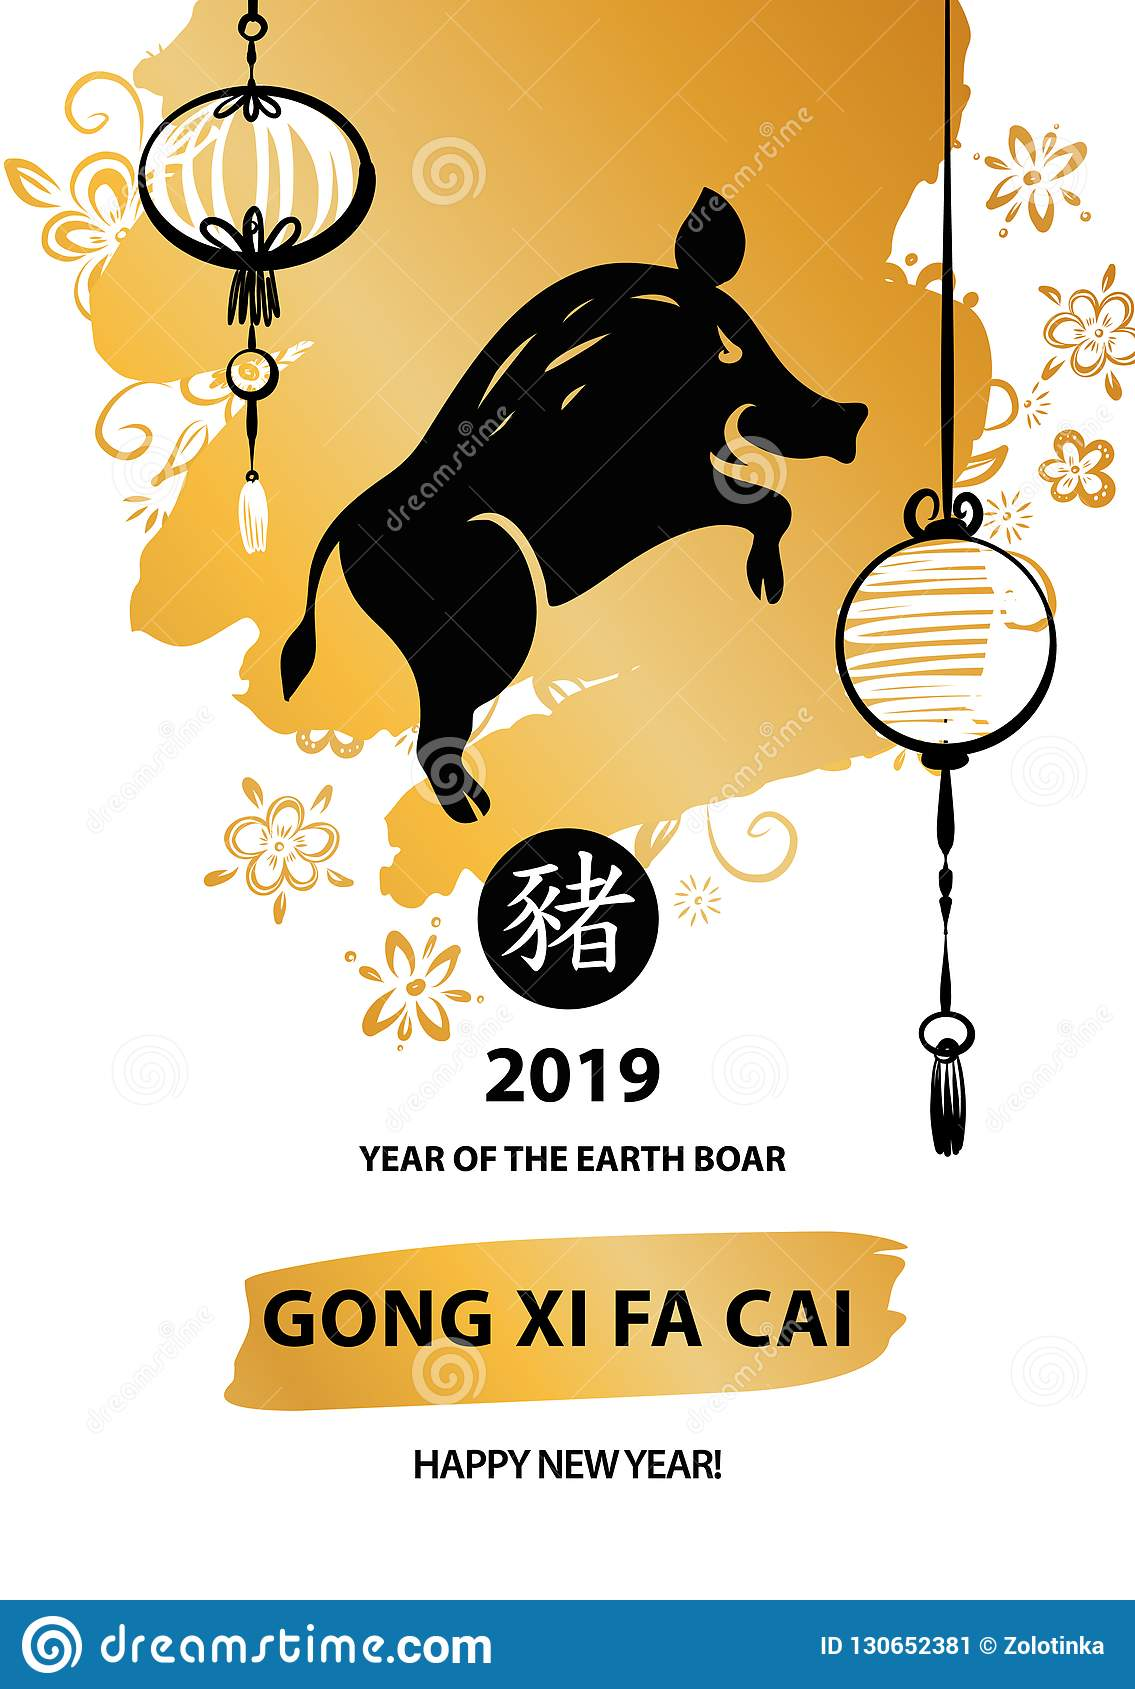 Gong Xi Fa Cai Mean Happy New Year Silhouette Pig Earth Boar S